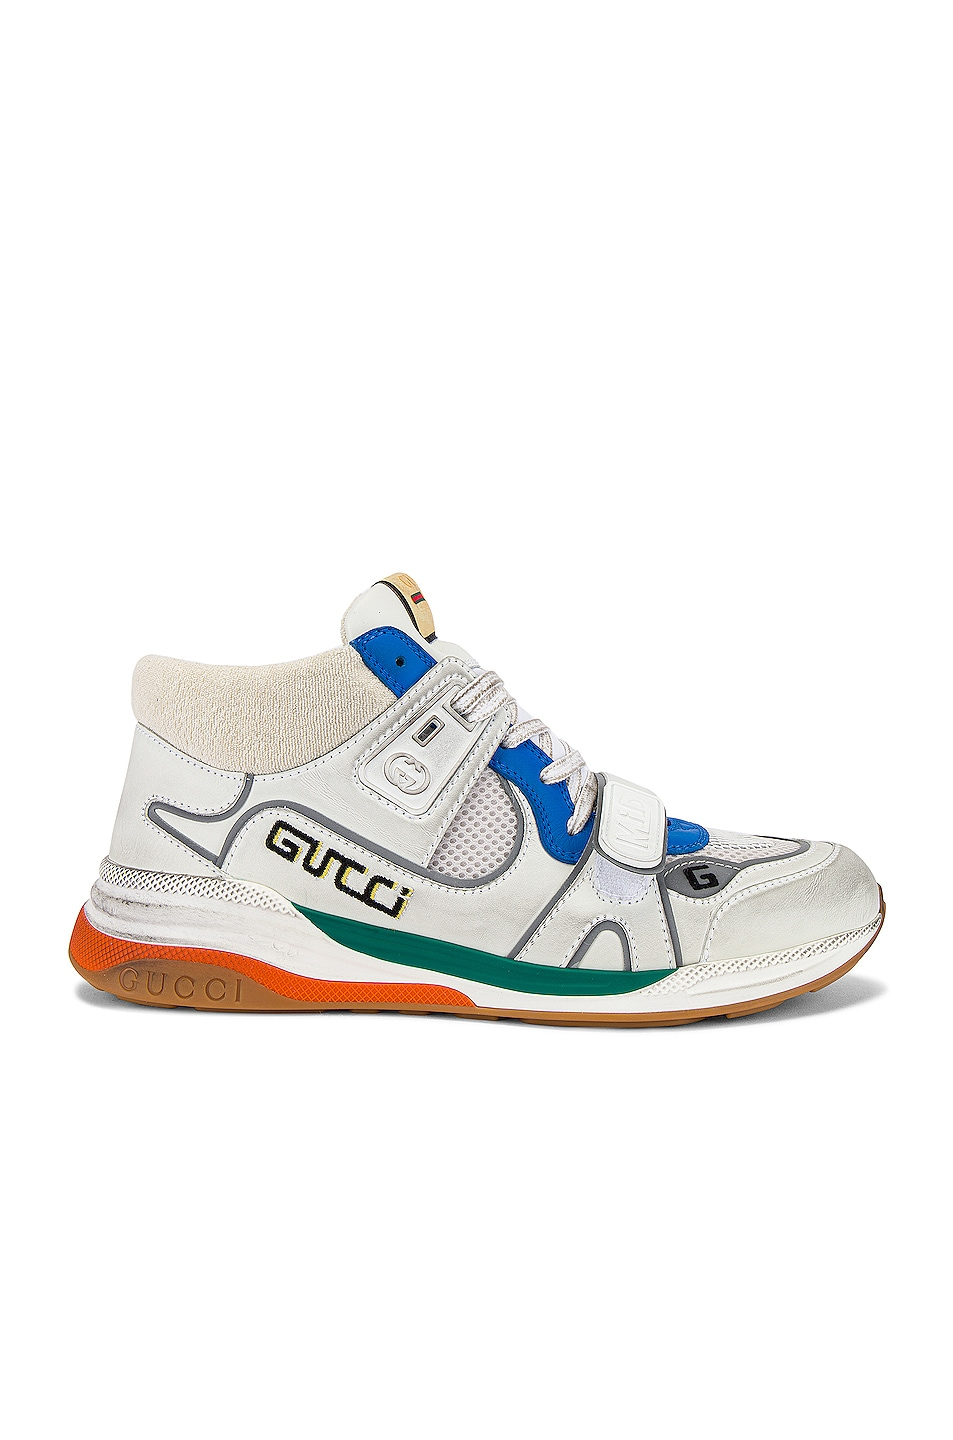 Image 2 of Gucci G Line Mid Low Top Sneaker in Blue & Silver & White